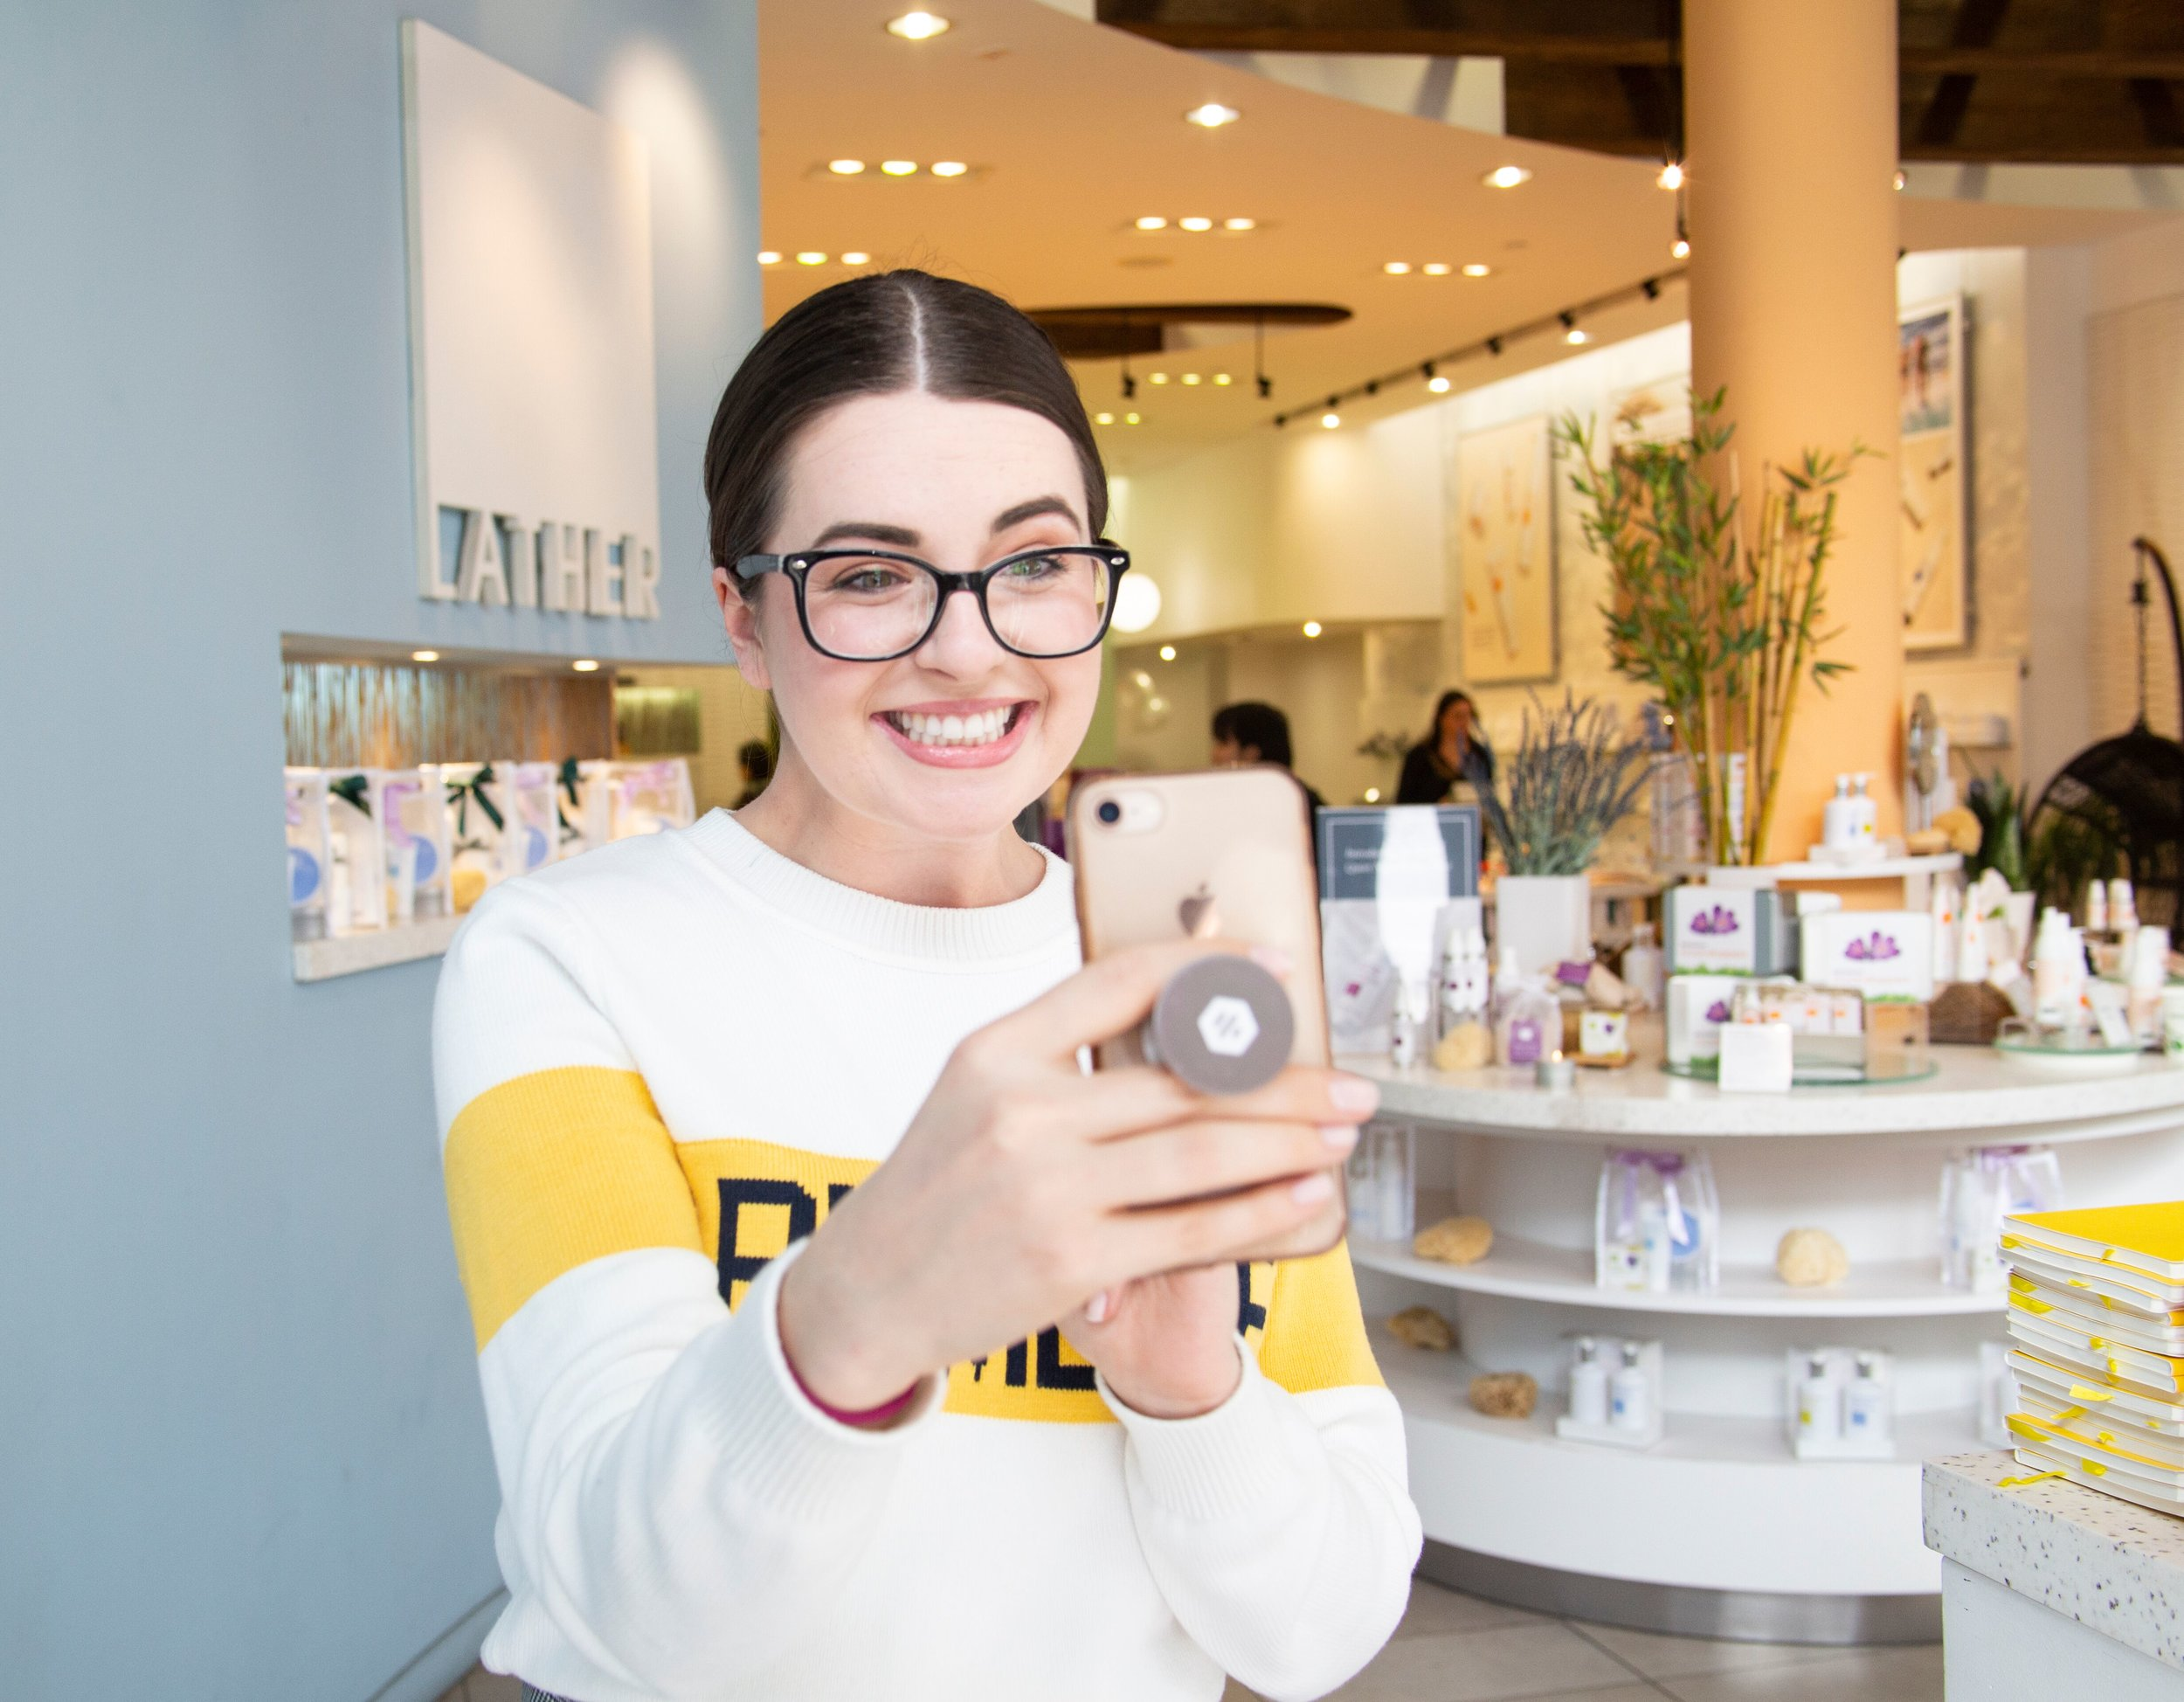 Bumble Pamper Party - #BreakUpWithTheBad